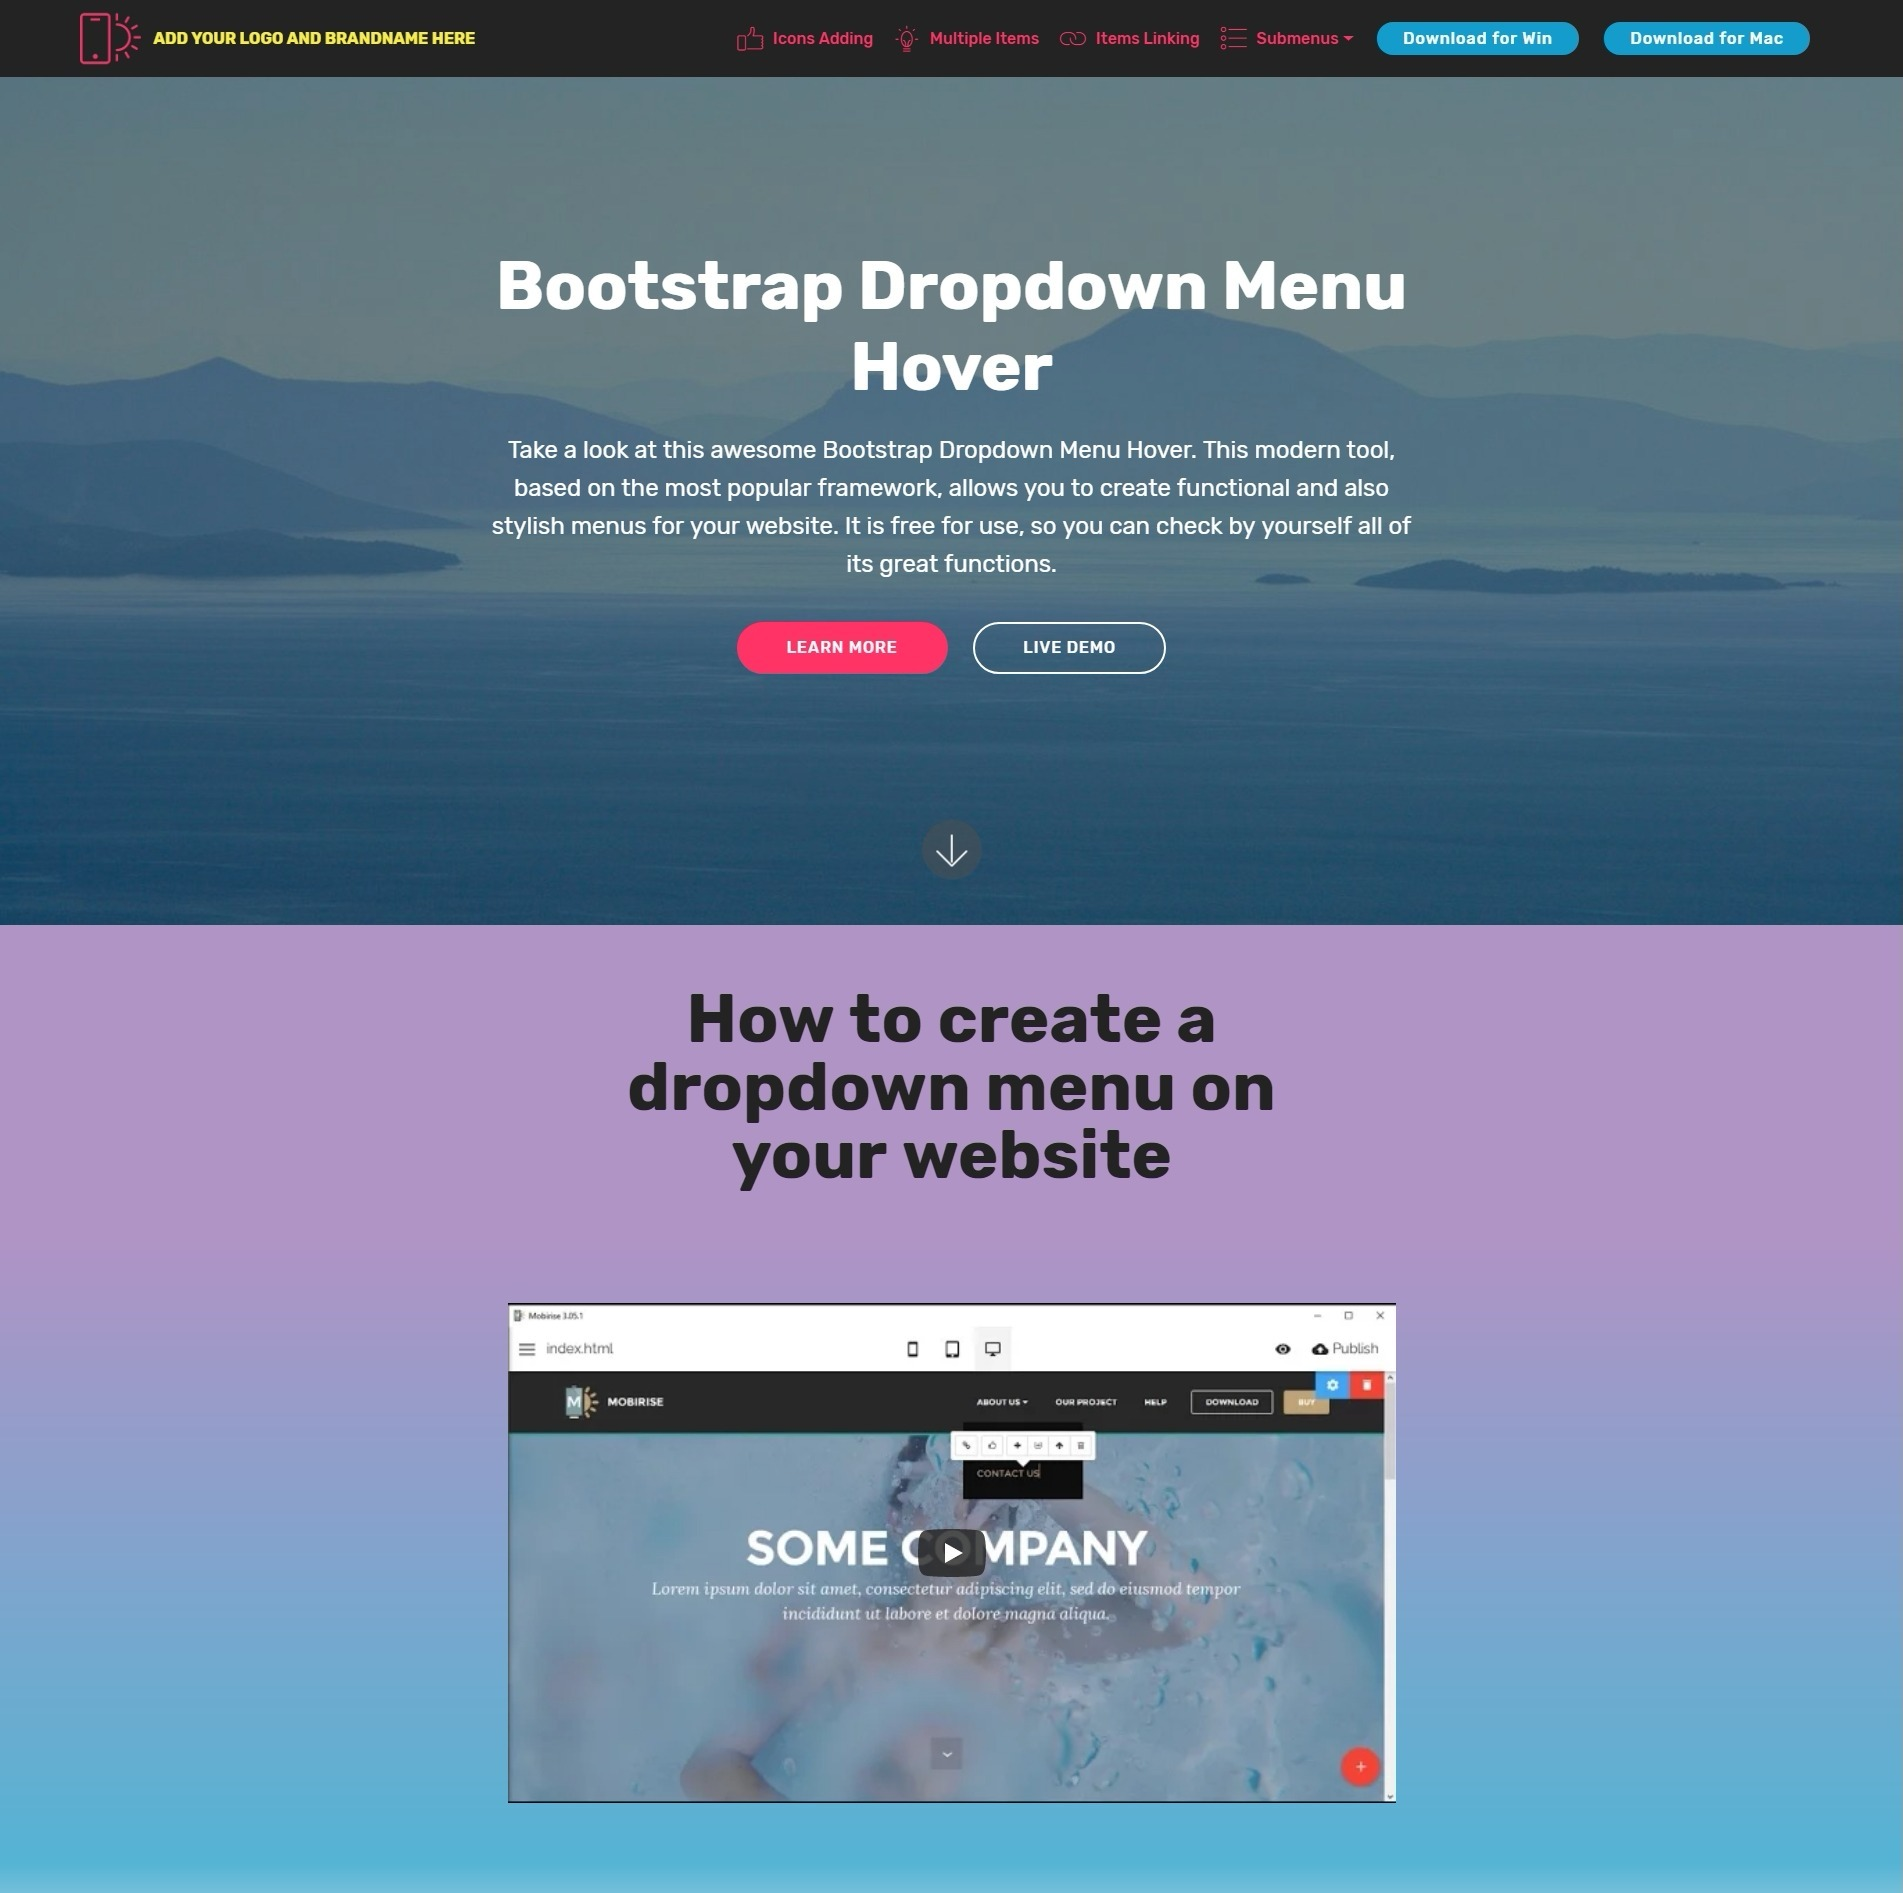 HTML5 Bootstrap Dropdown Menu Hover Demo